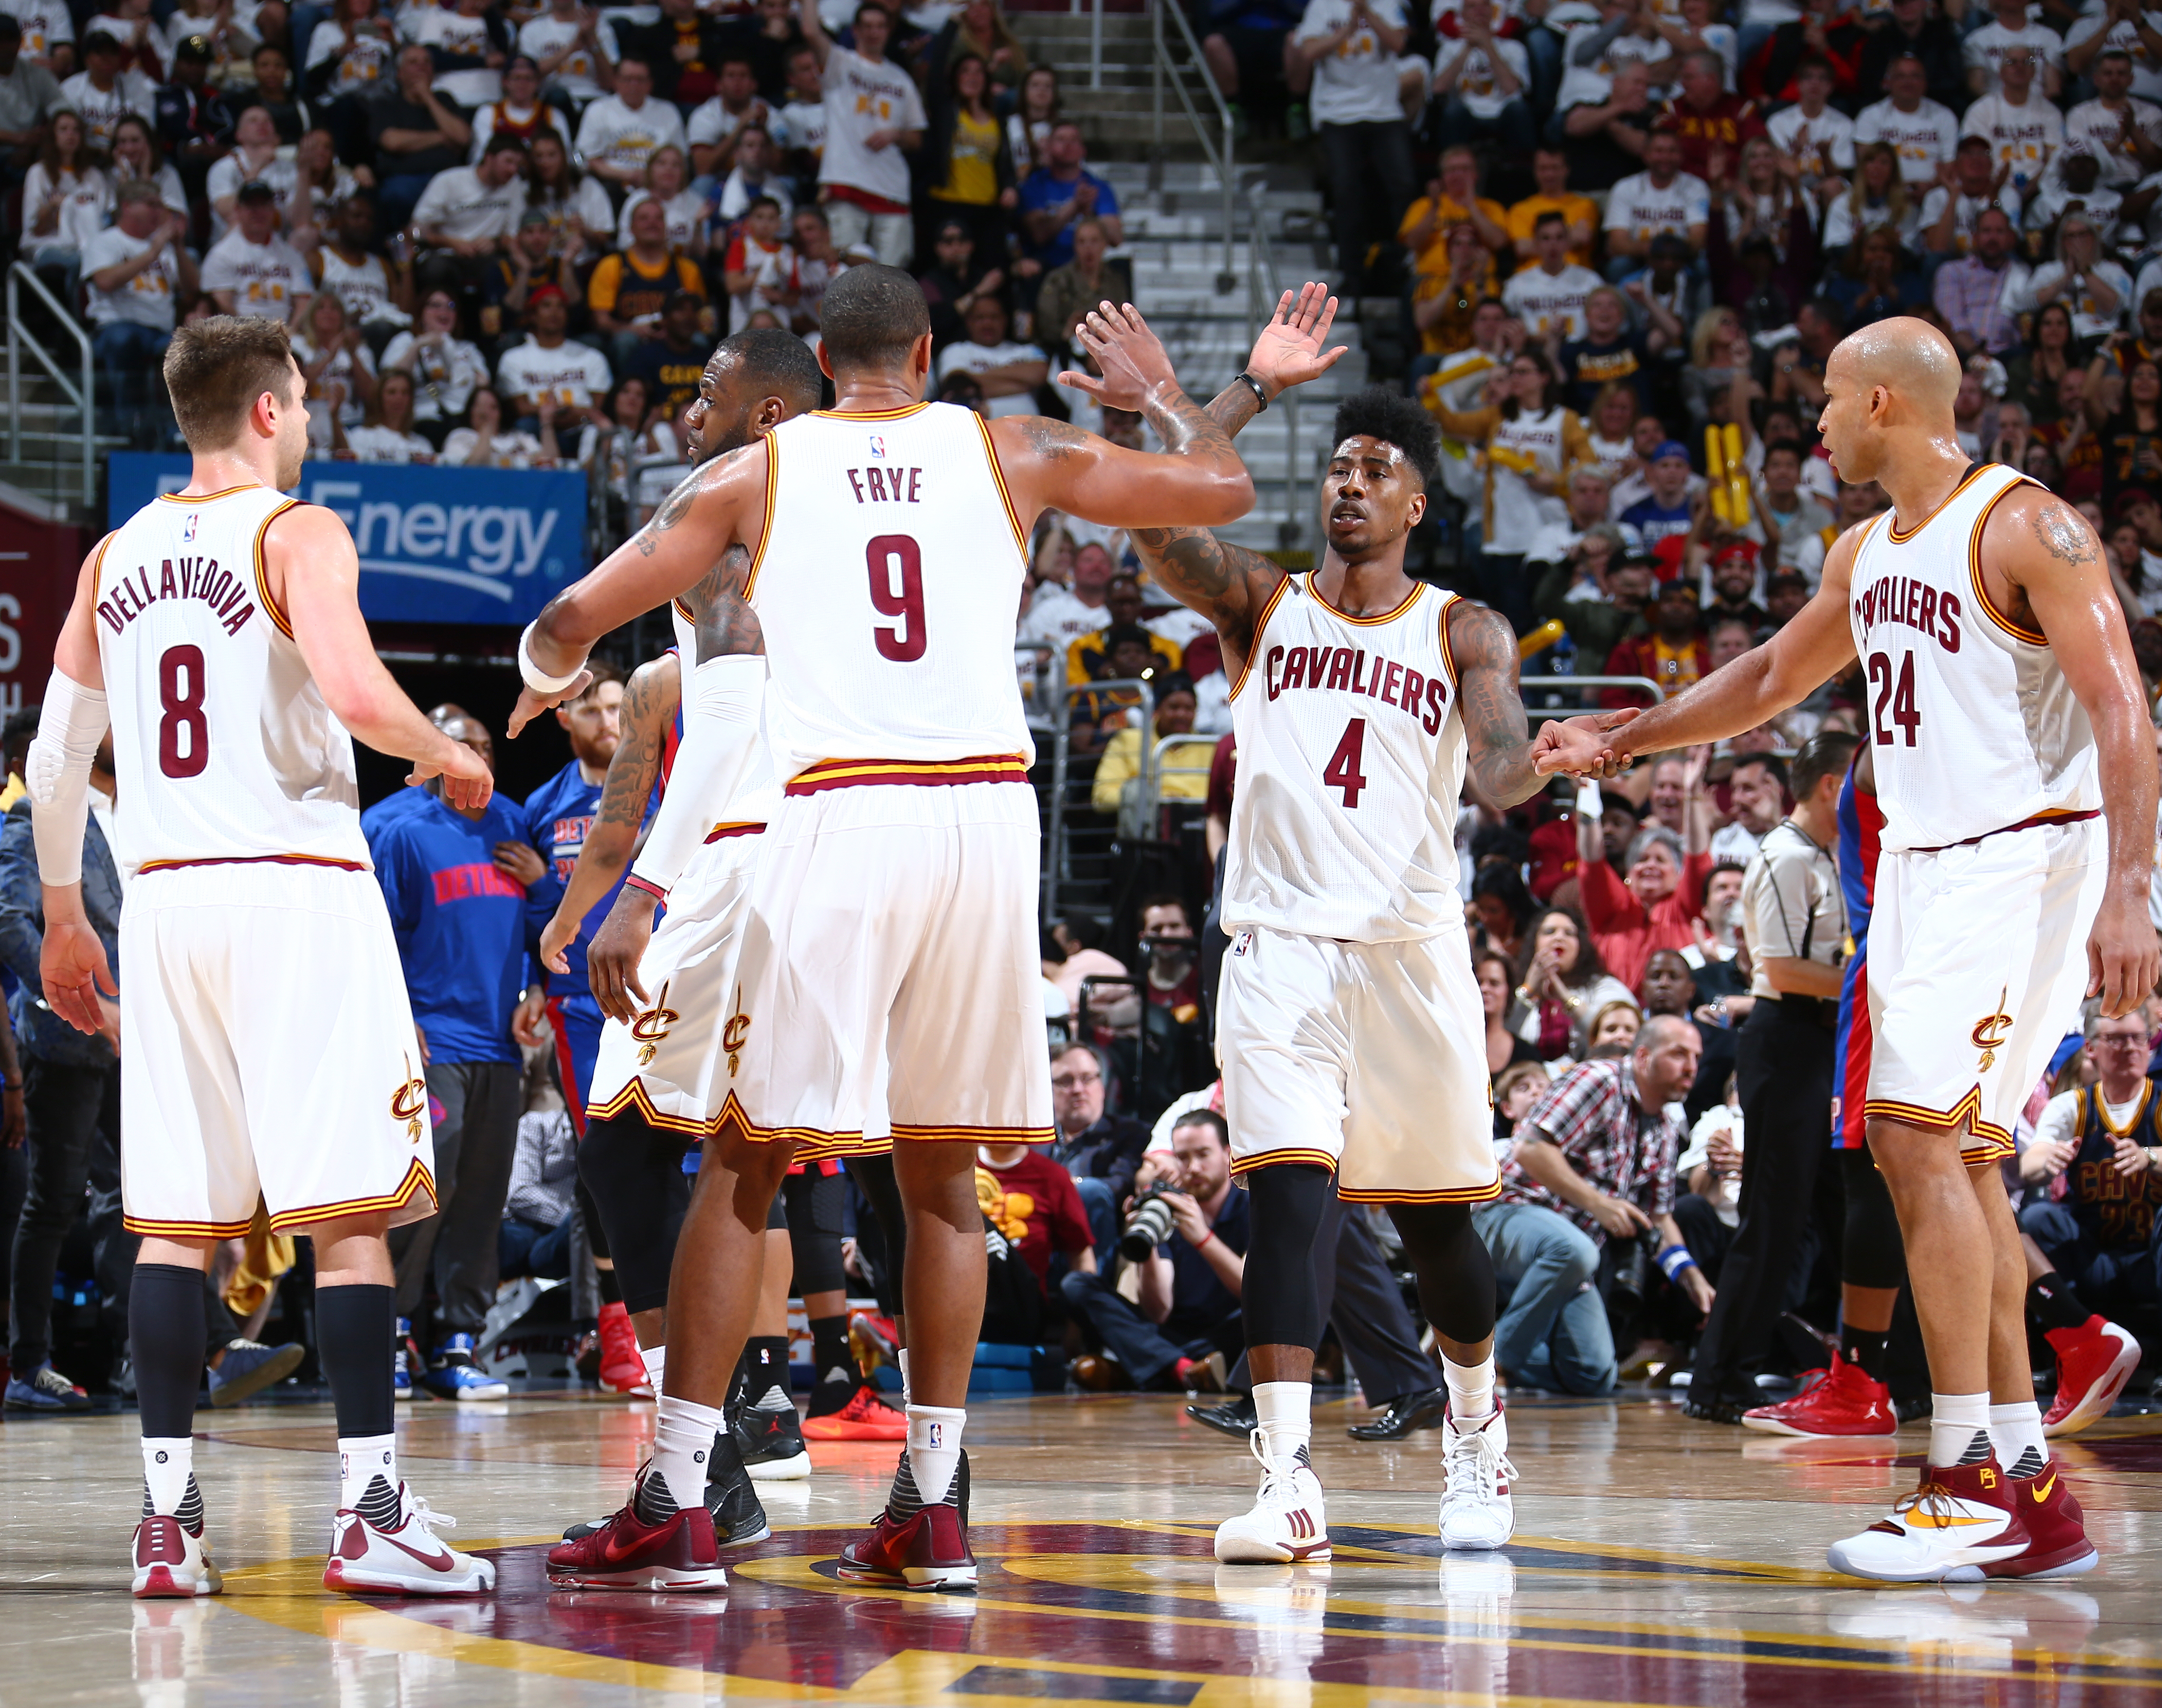 CLEVELAND, OH - APRIL 20:  Iman Shumpert #4 of the Cleveland Cavaliers high fives teammates against the Detroit Pistons in Game Two of the Eastern Conference Quarterfinals during the 2016 NBA Playoffs on April 20, 2016 at Quicken Loans Arena in Cleveland,